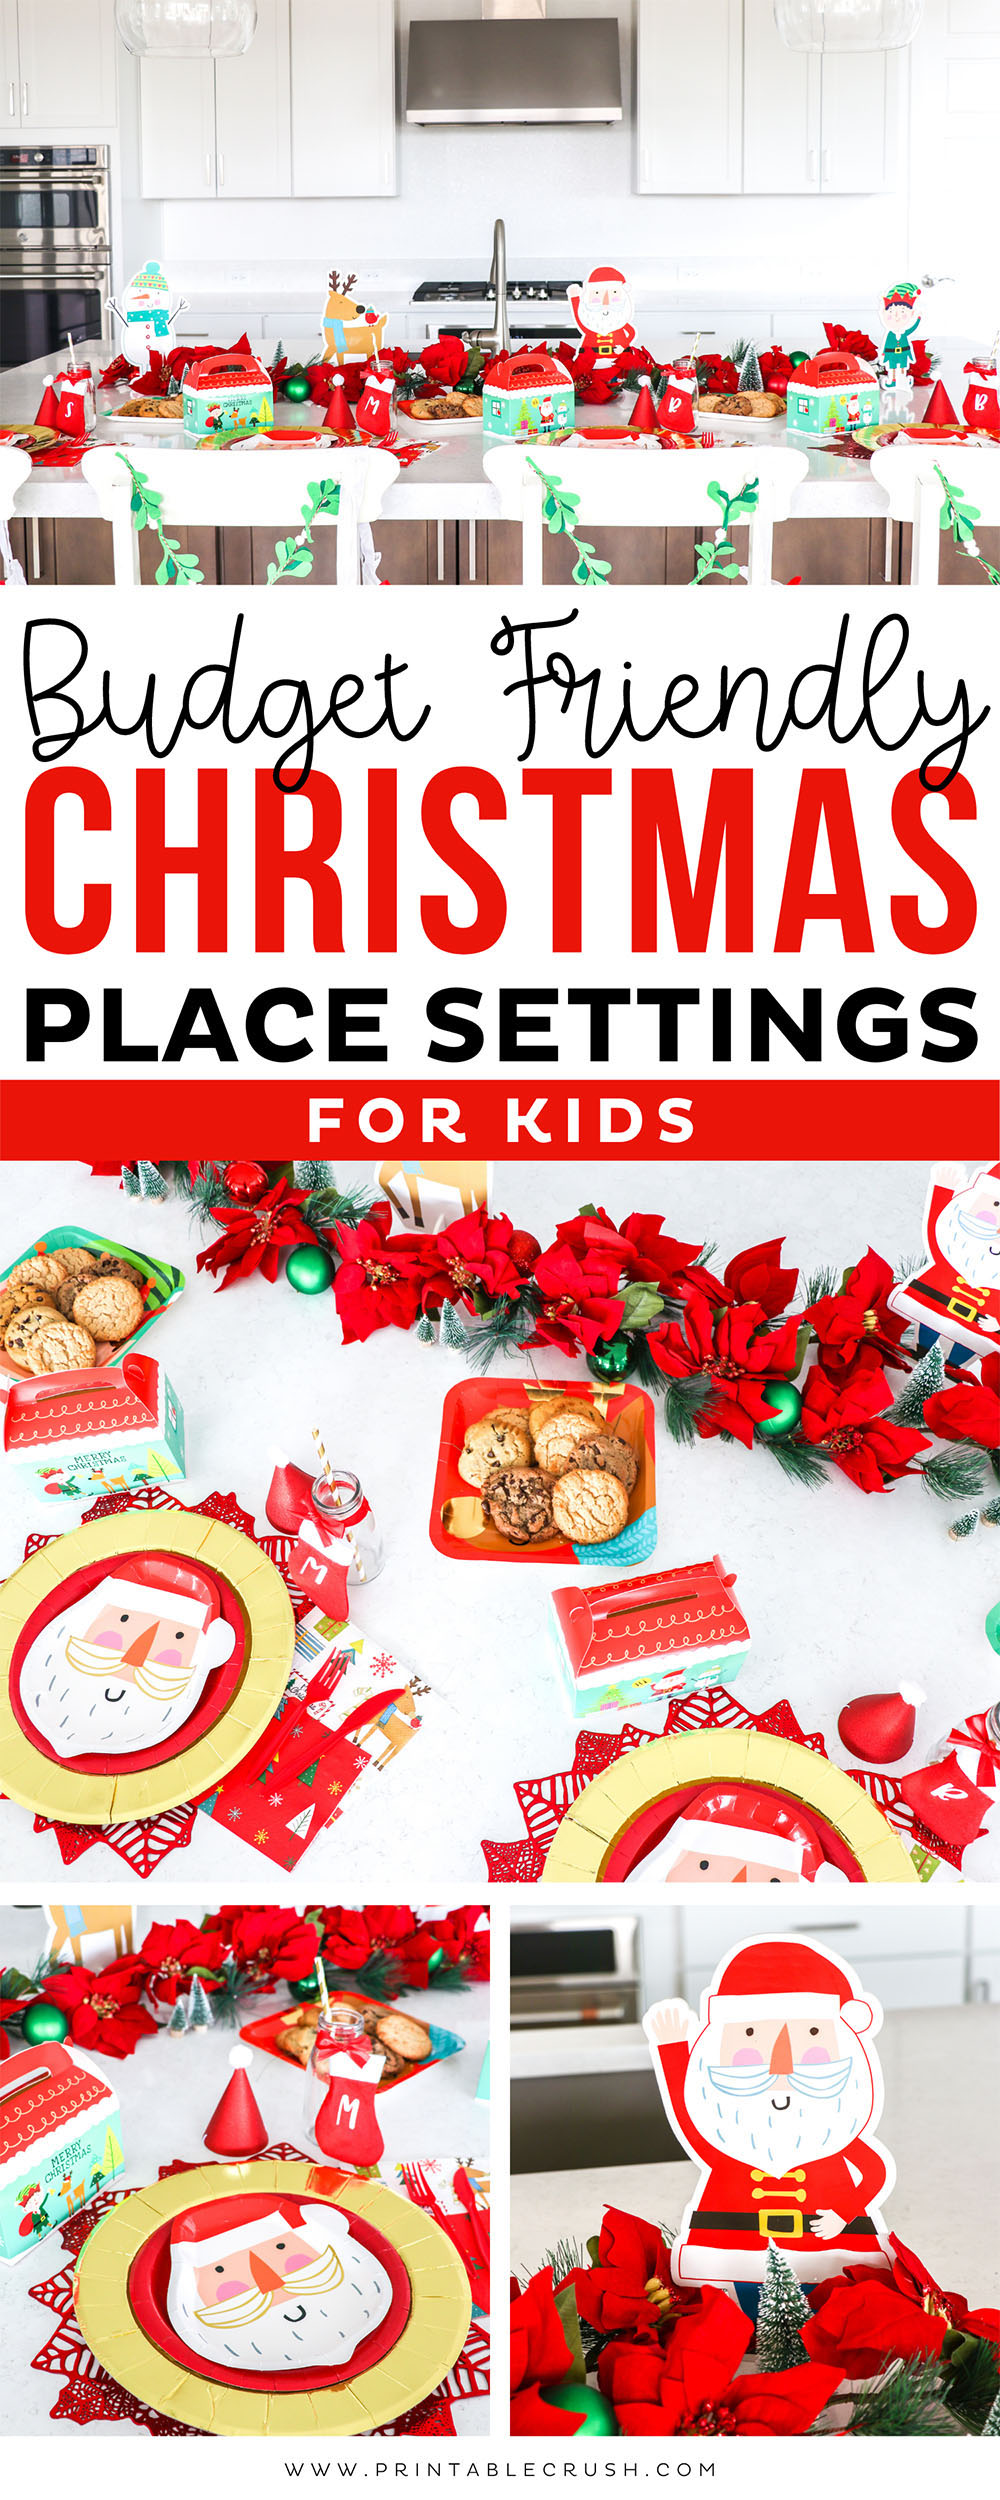 Budget Friendly Christmas Place Settings for Kids - Holiday Place Settings - Santa Christmas Plates - Santa Christmas Party - Printable Crush via @printablecrush